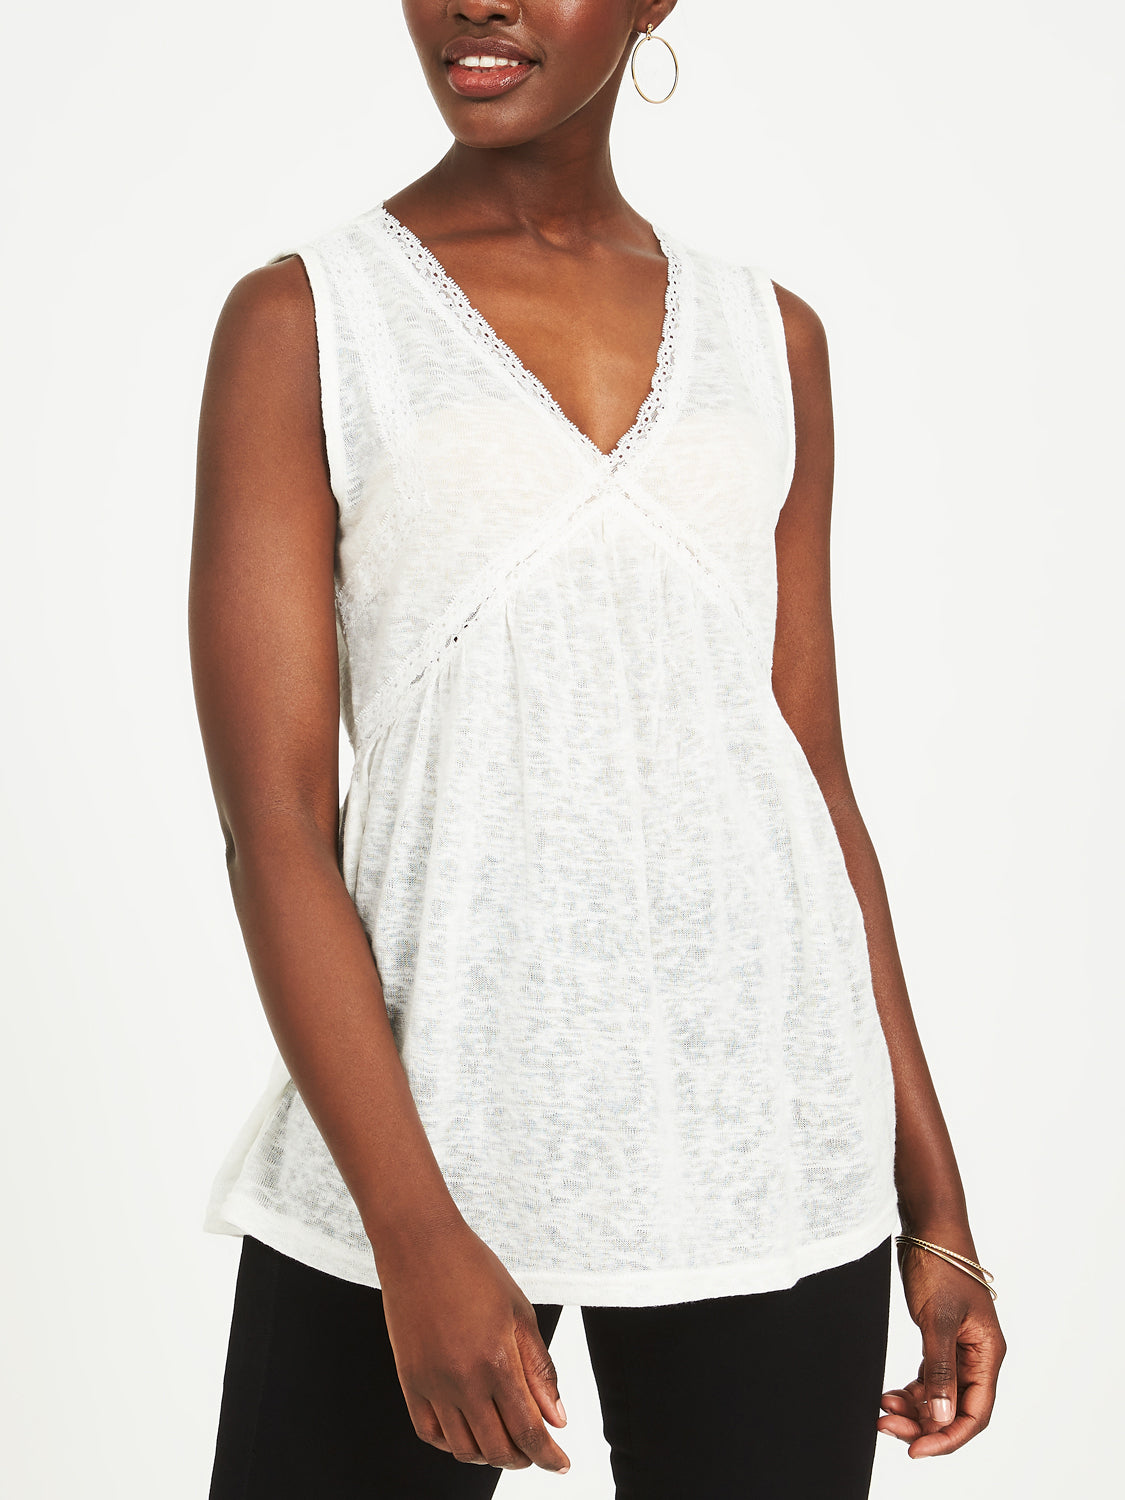 Empire Waist Lace Tank Top